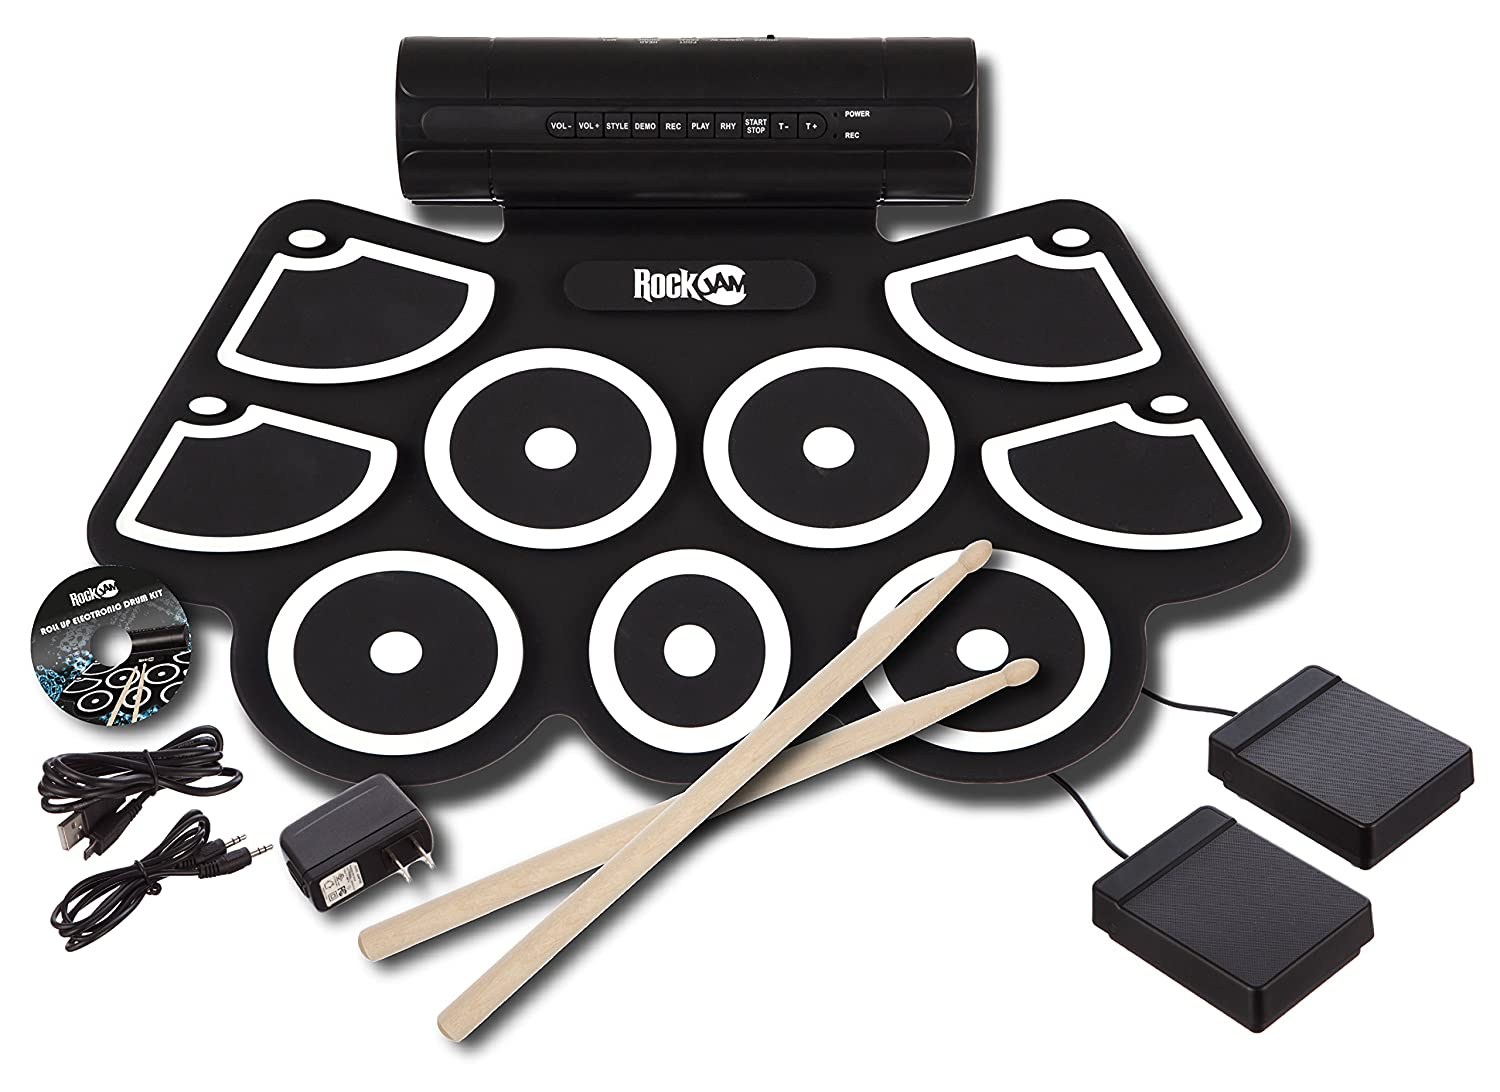 RockJam Electronic Roll Up MIDI Drum Kit with Built in Speakers, Foot Pedals, Drumsticks, and Power Supply PDT Ltd - IMPORT (UK Vendor Product FOB China) RJ760MD